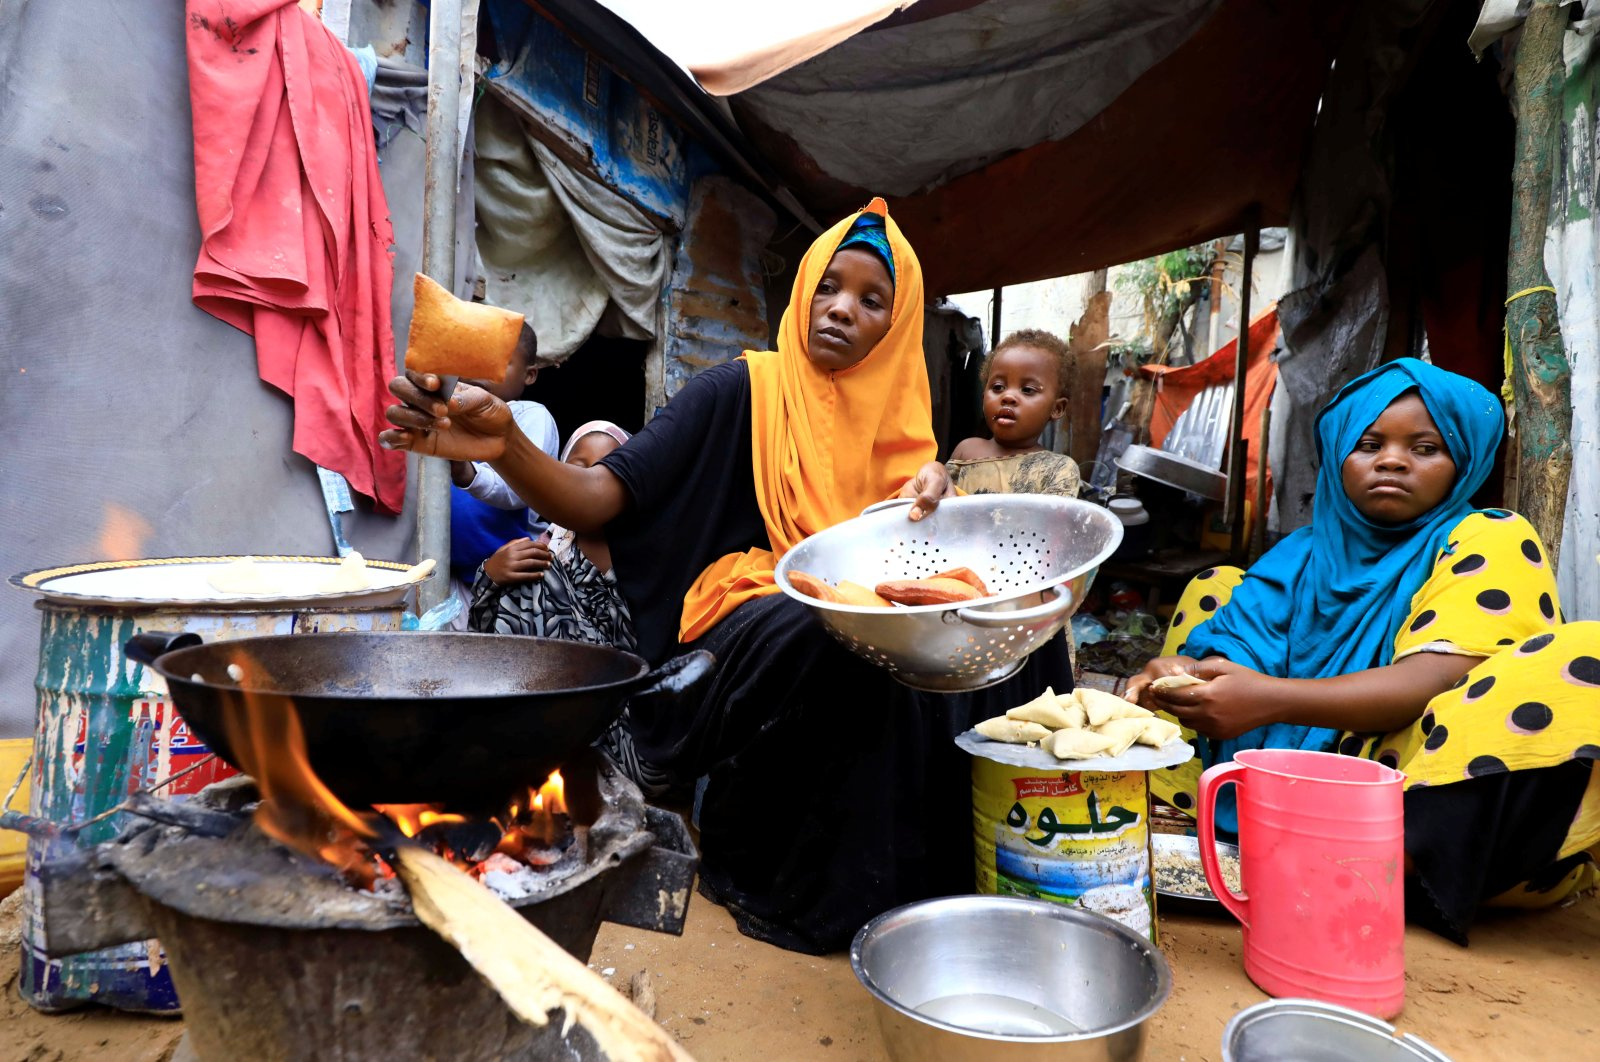 An internally displaced Somali woman and her children prepare their Iftar meal during the month of Ramadan at the Shabelle makeshift camp in Hodan district of Mogadishu, Somalia, April 24, 2020. (Reuters Photo)